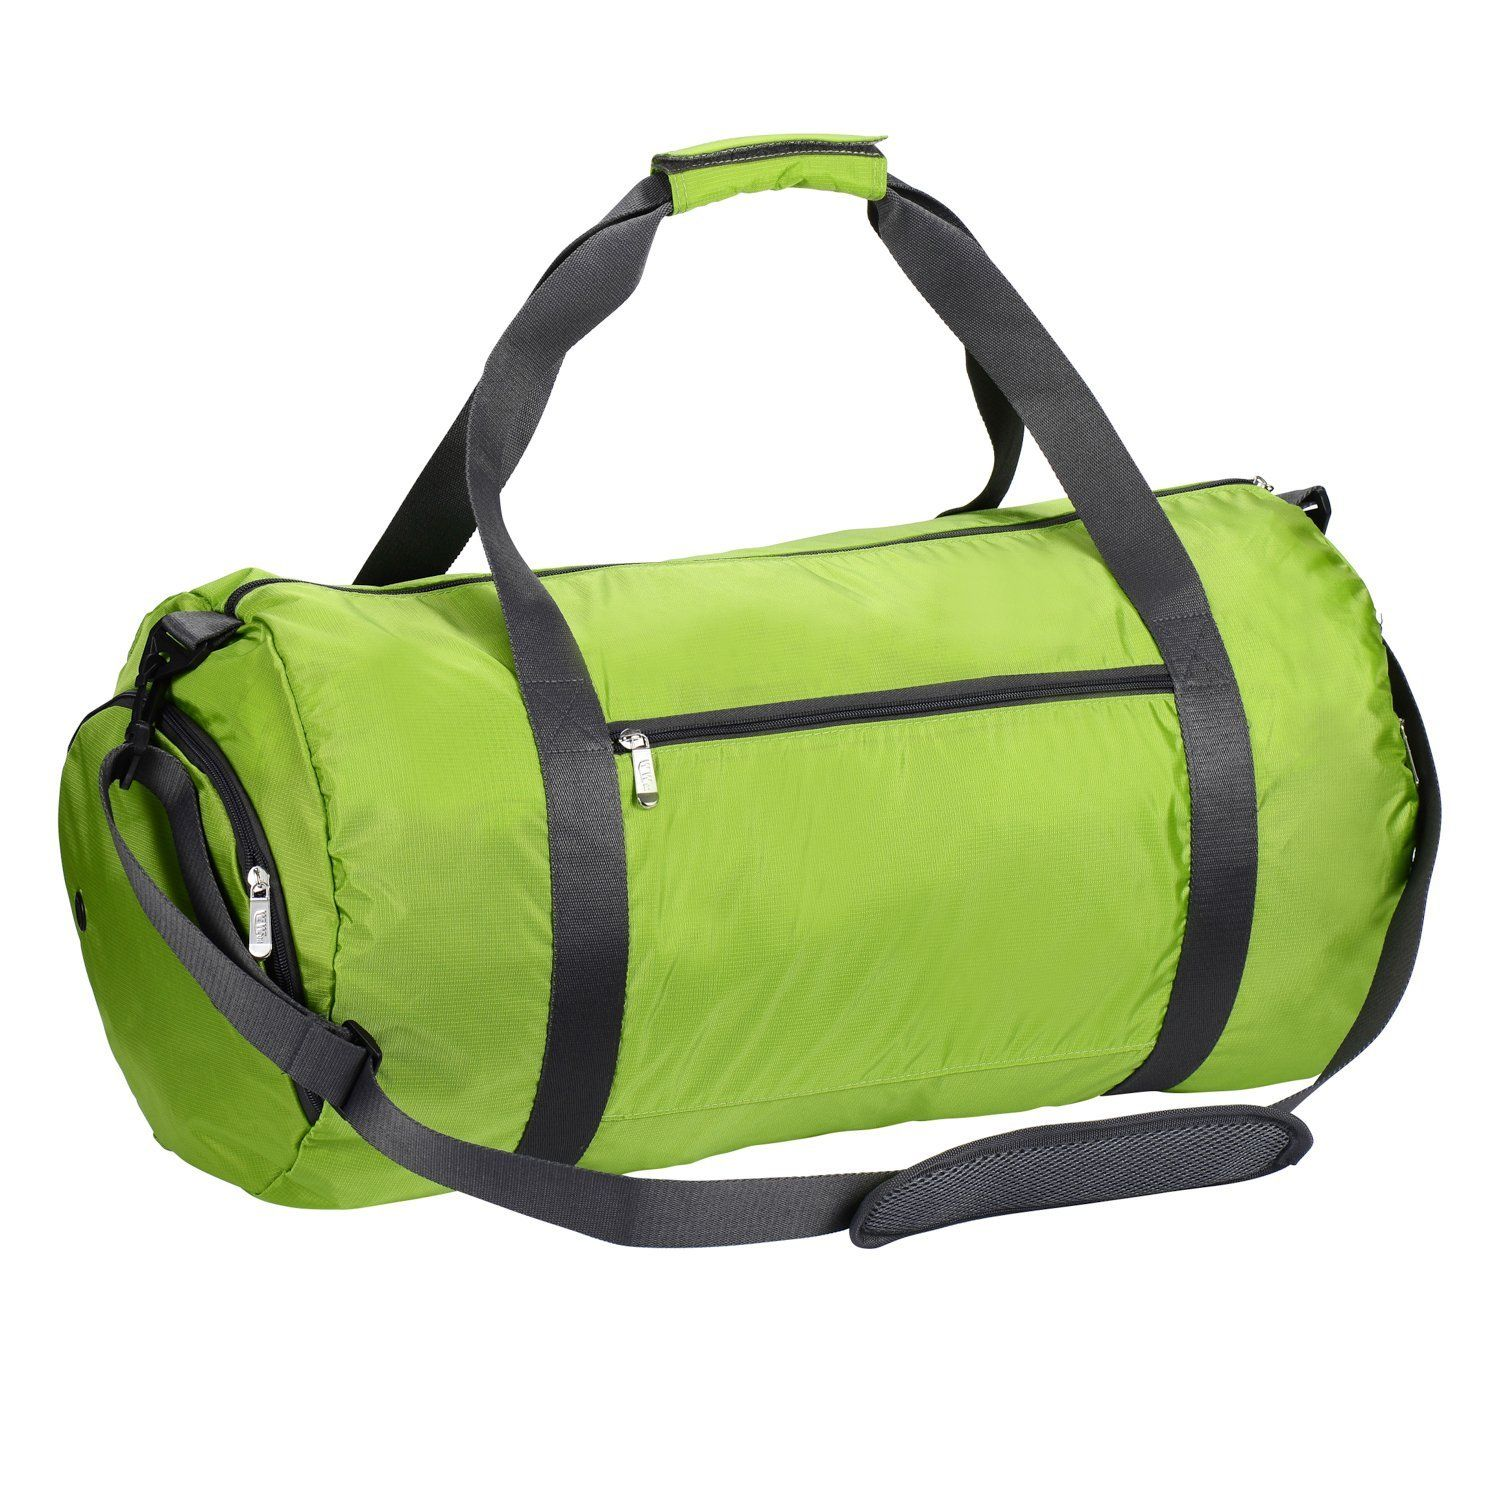 ada0f7e8a936  22.99  LARGE  GYM DUFFEL BAG with 23x12x12 inches is a convenient choice  for your everyday activities